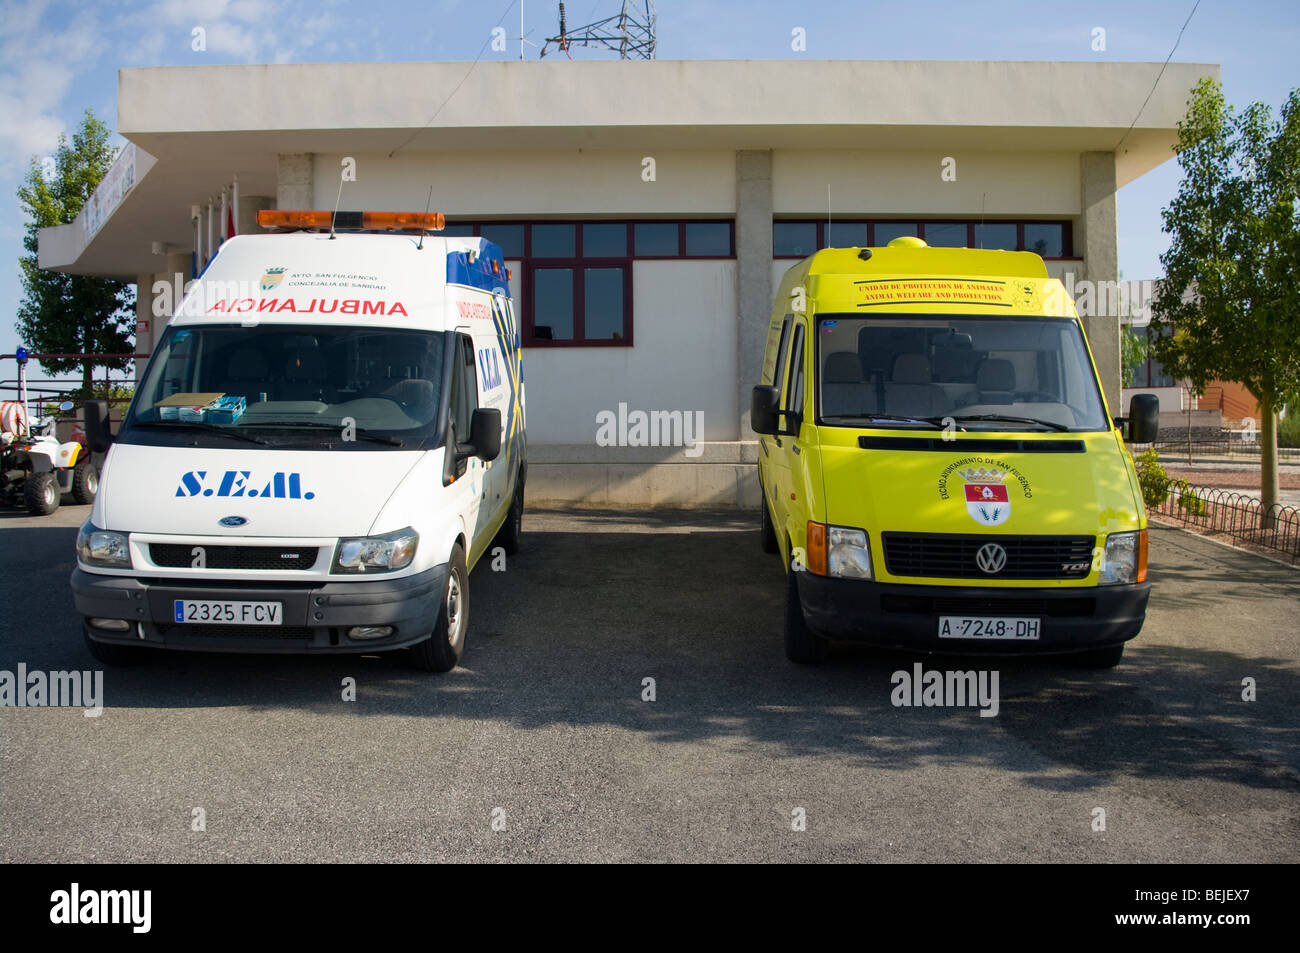 s e m stock photos s e m stock images alamy spanish ambulance and animal ambulance la marina spain stock image